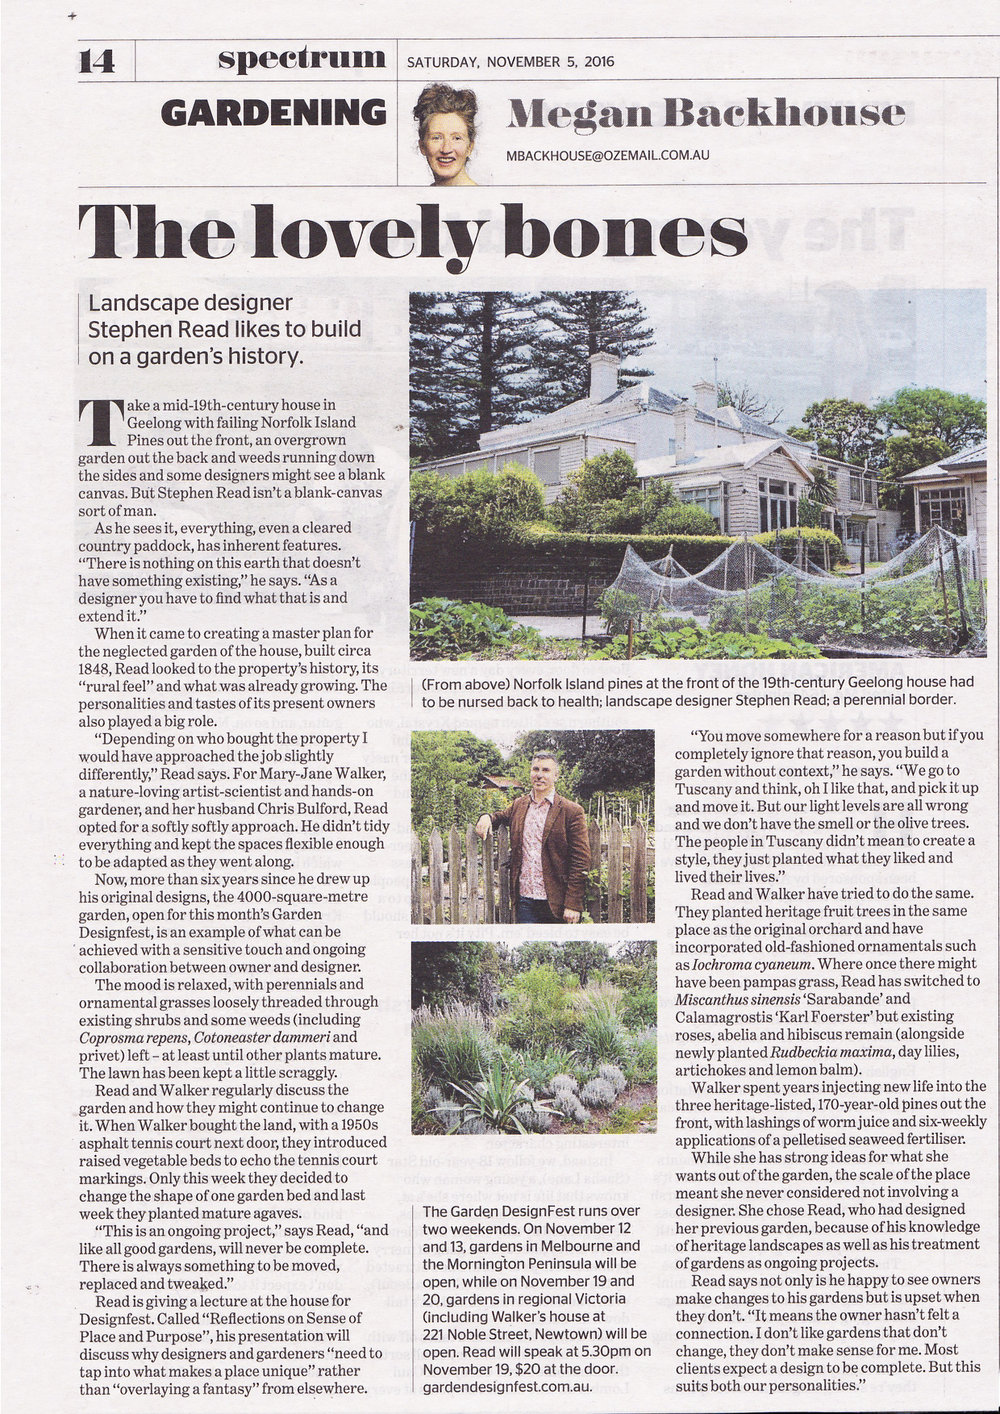 As featured in The Age Spectrum Magazine